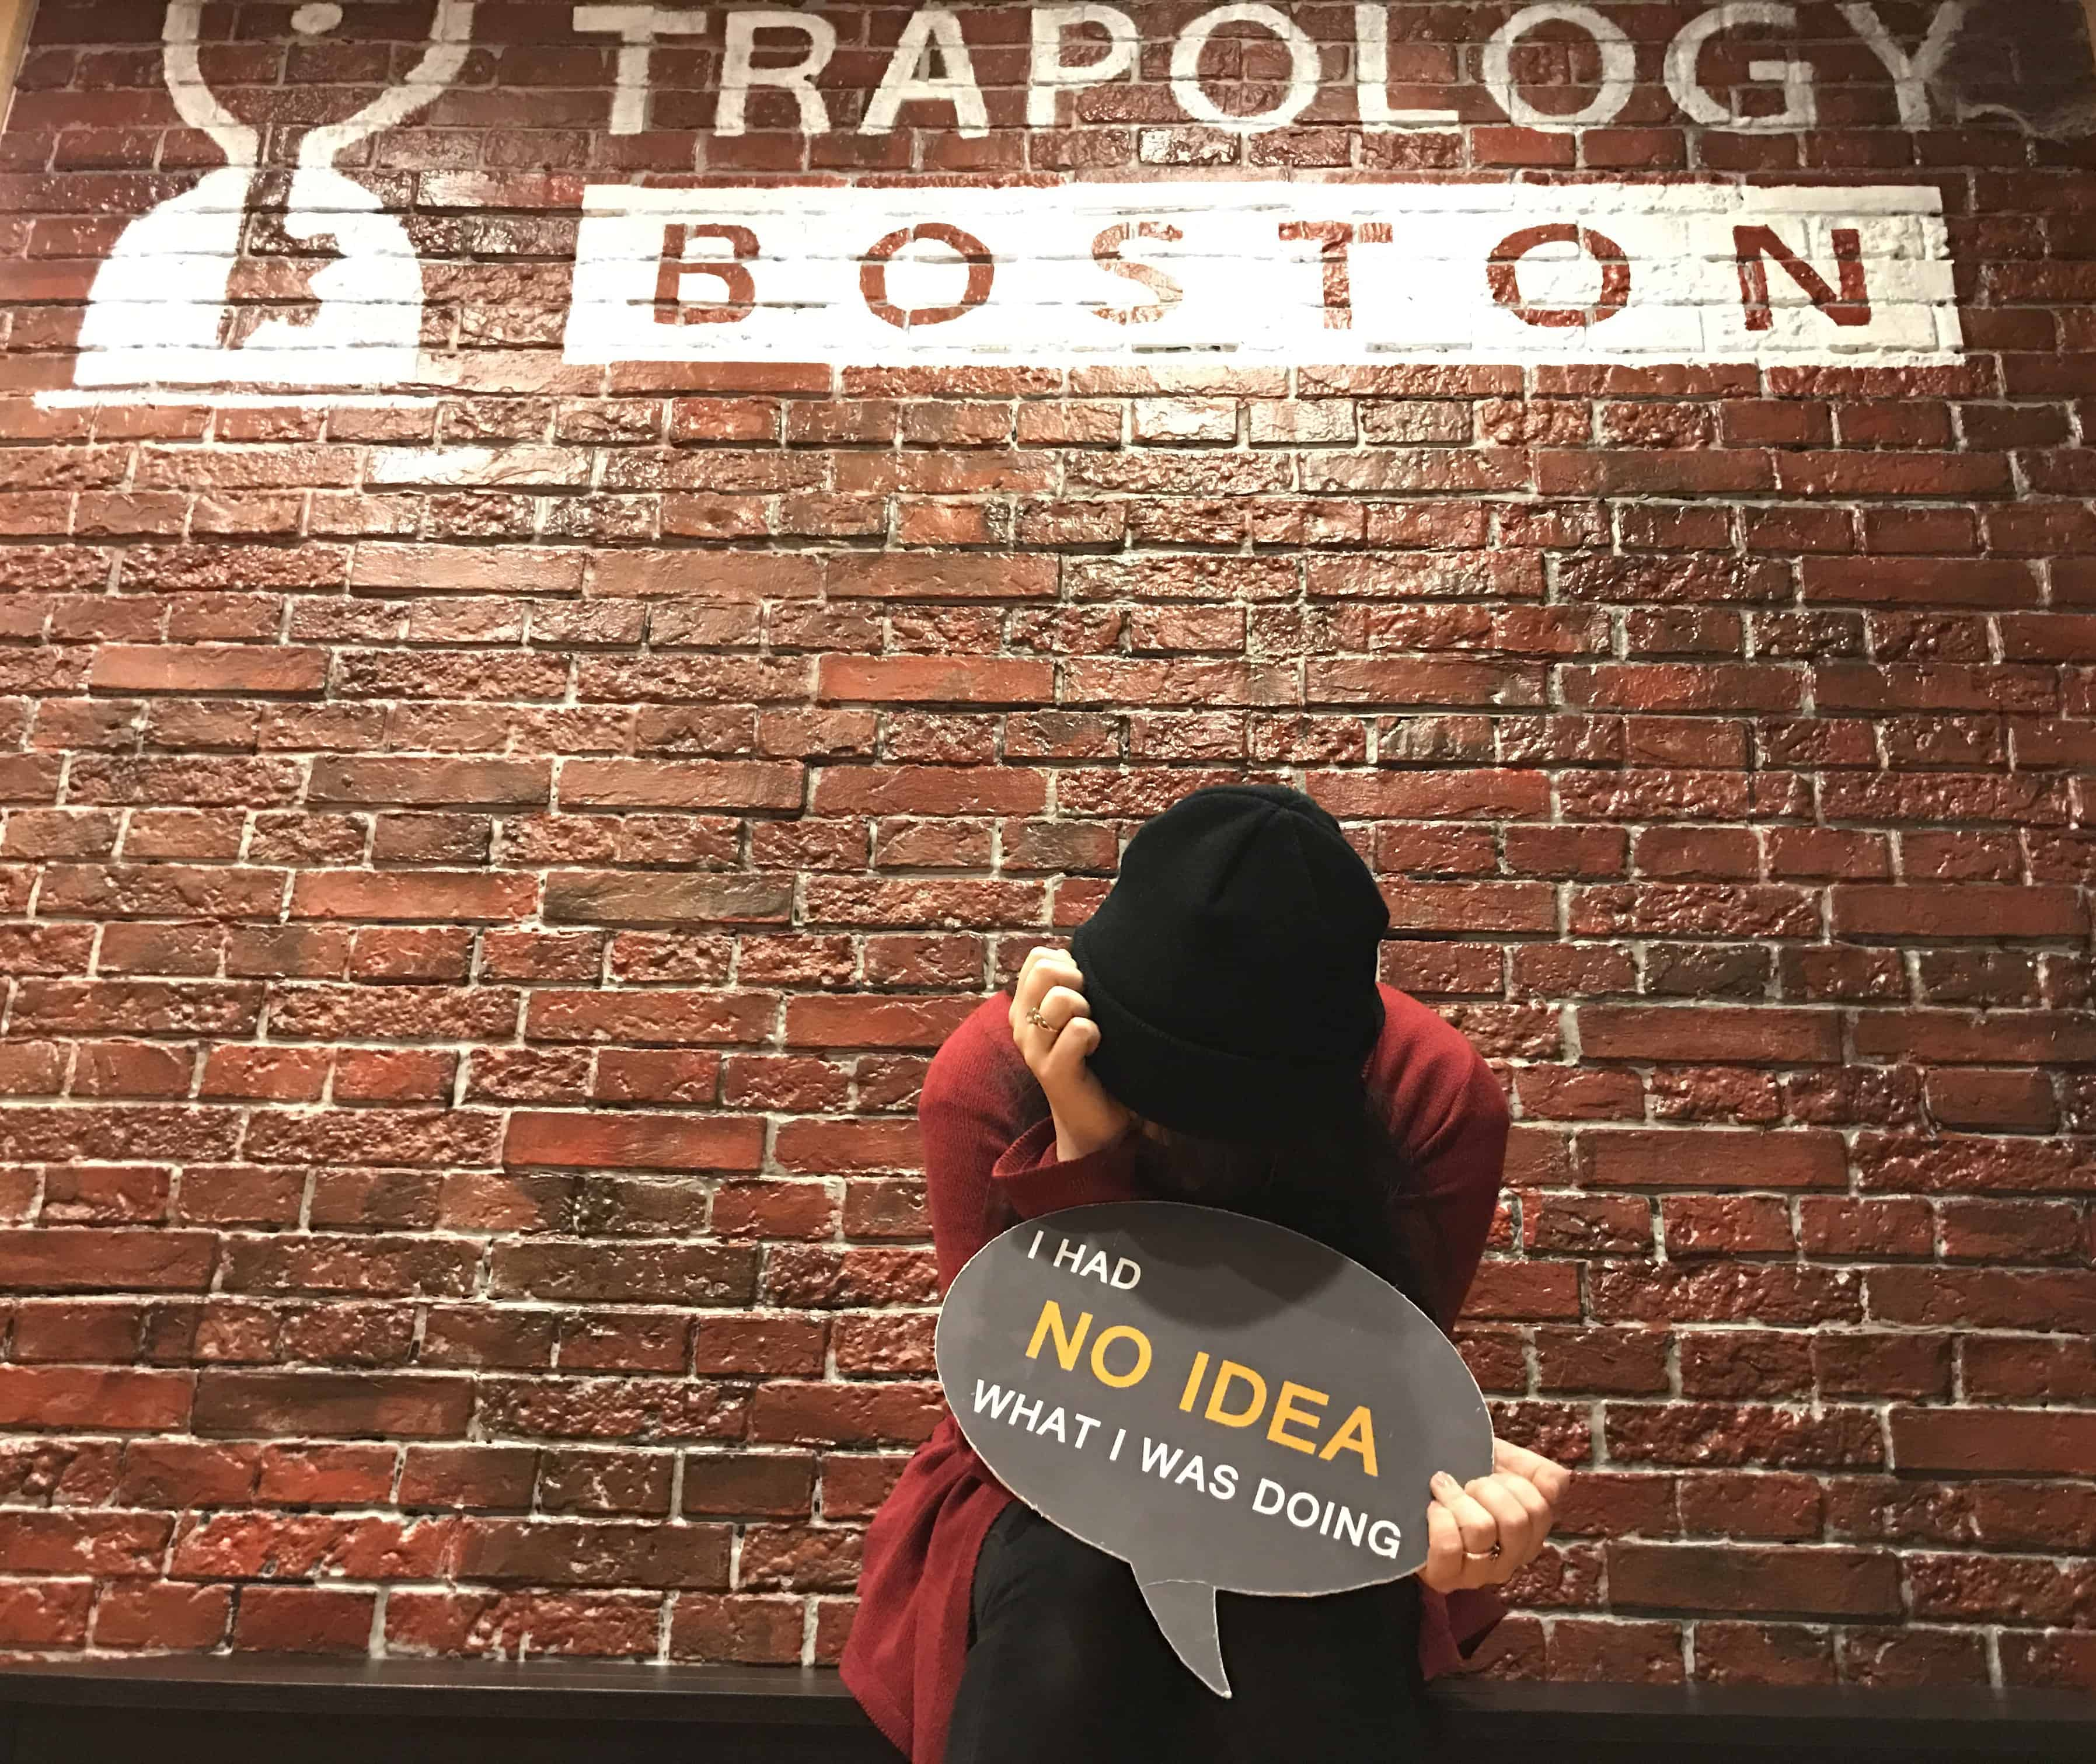 Trapology Boston escape game players' regrets